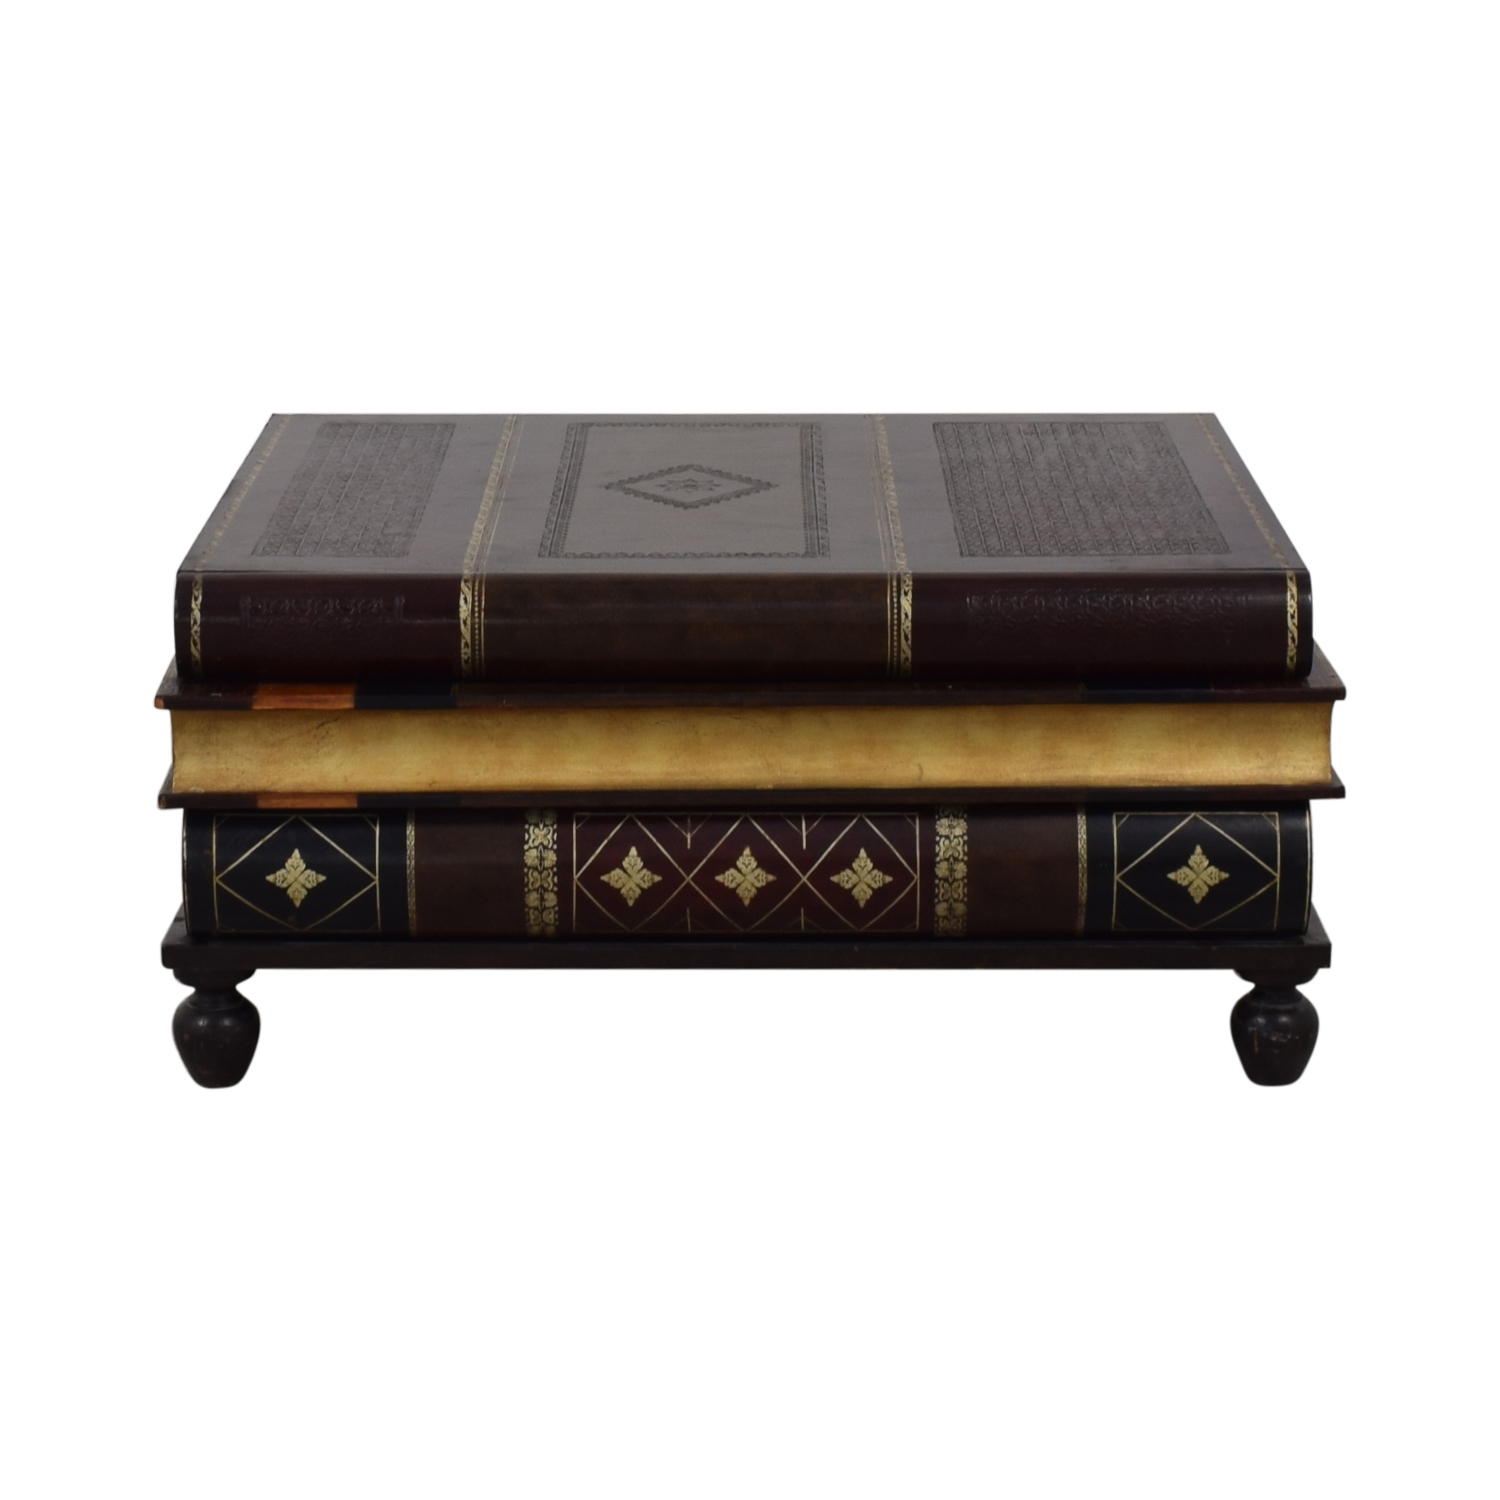 67% OFF   Maitland Smith Maitland Smith Stacked Books Style Coffee Table /  Tables